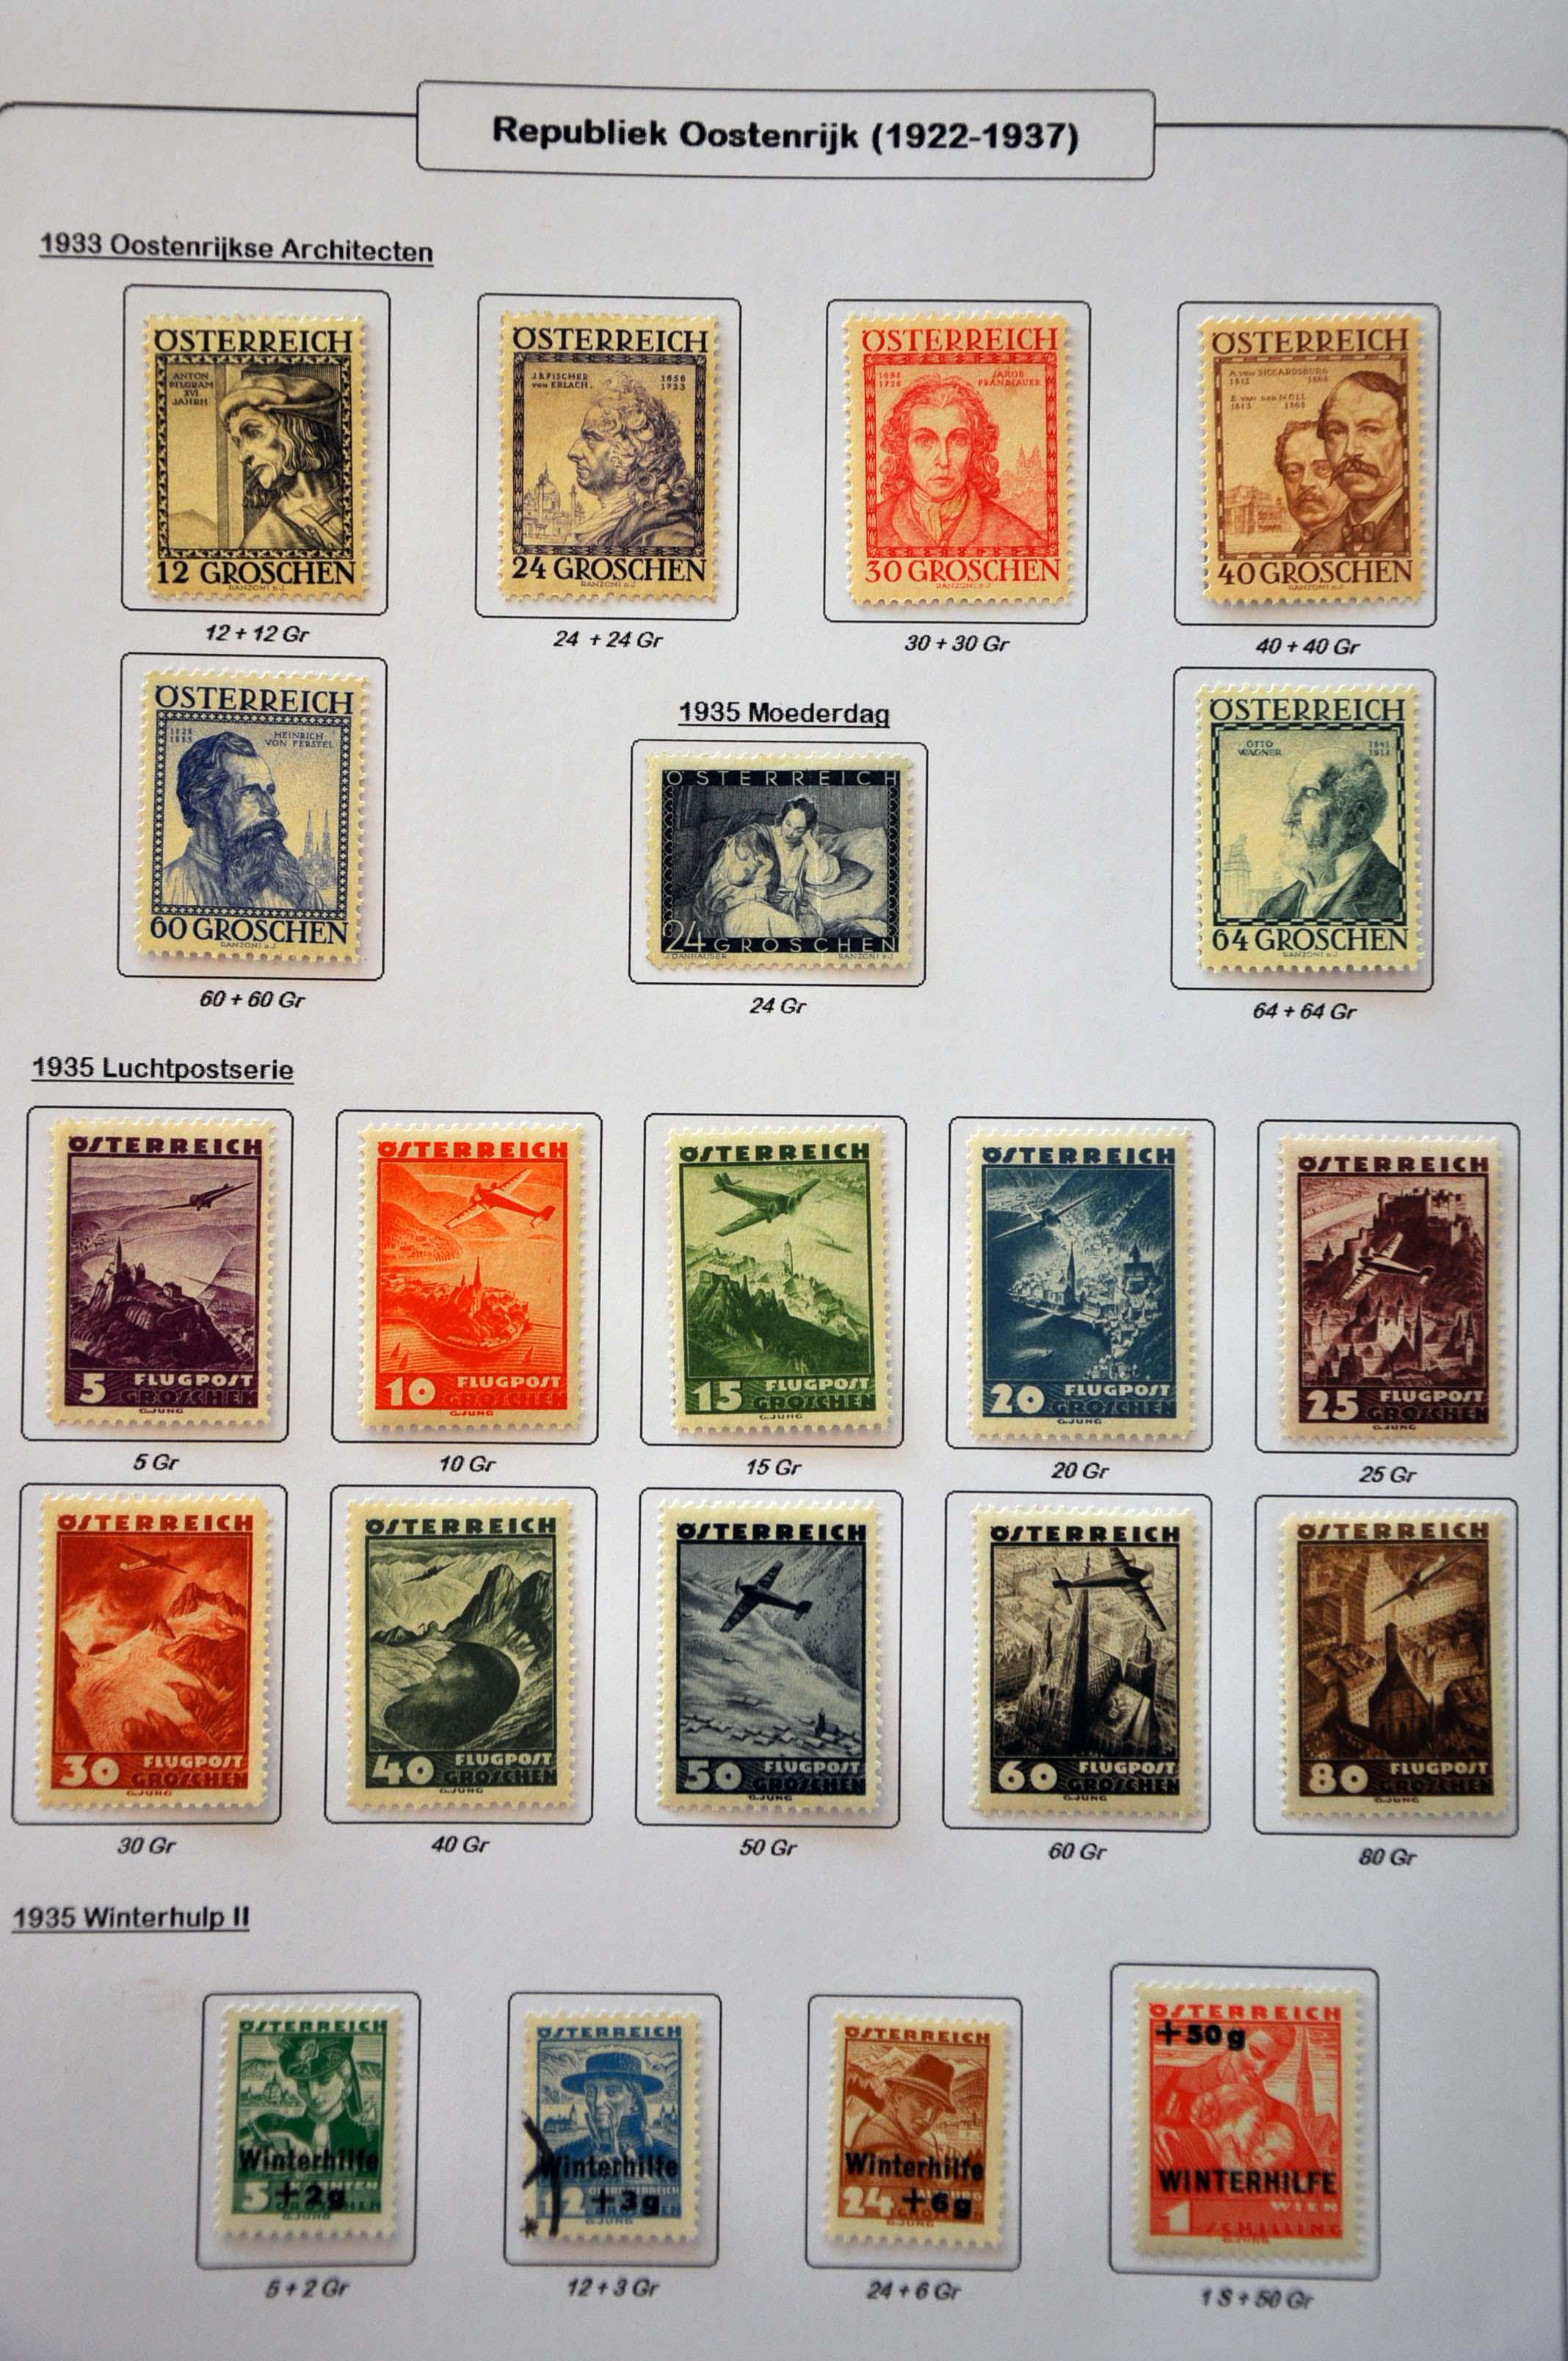 Lot 578 - Austria and former territories Austria -  Corinphila Veilingen Auction 245-246 Day 2 - Foreign countries - Collections and lots, Foreign countries - Boxes and literature